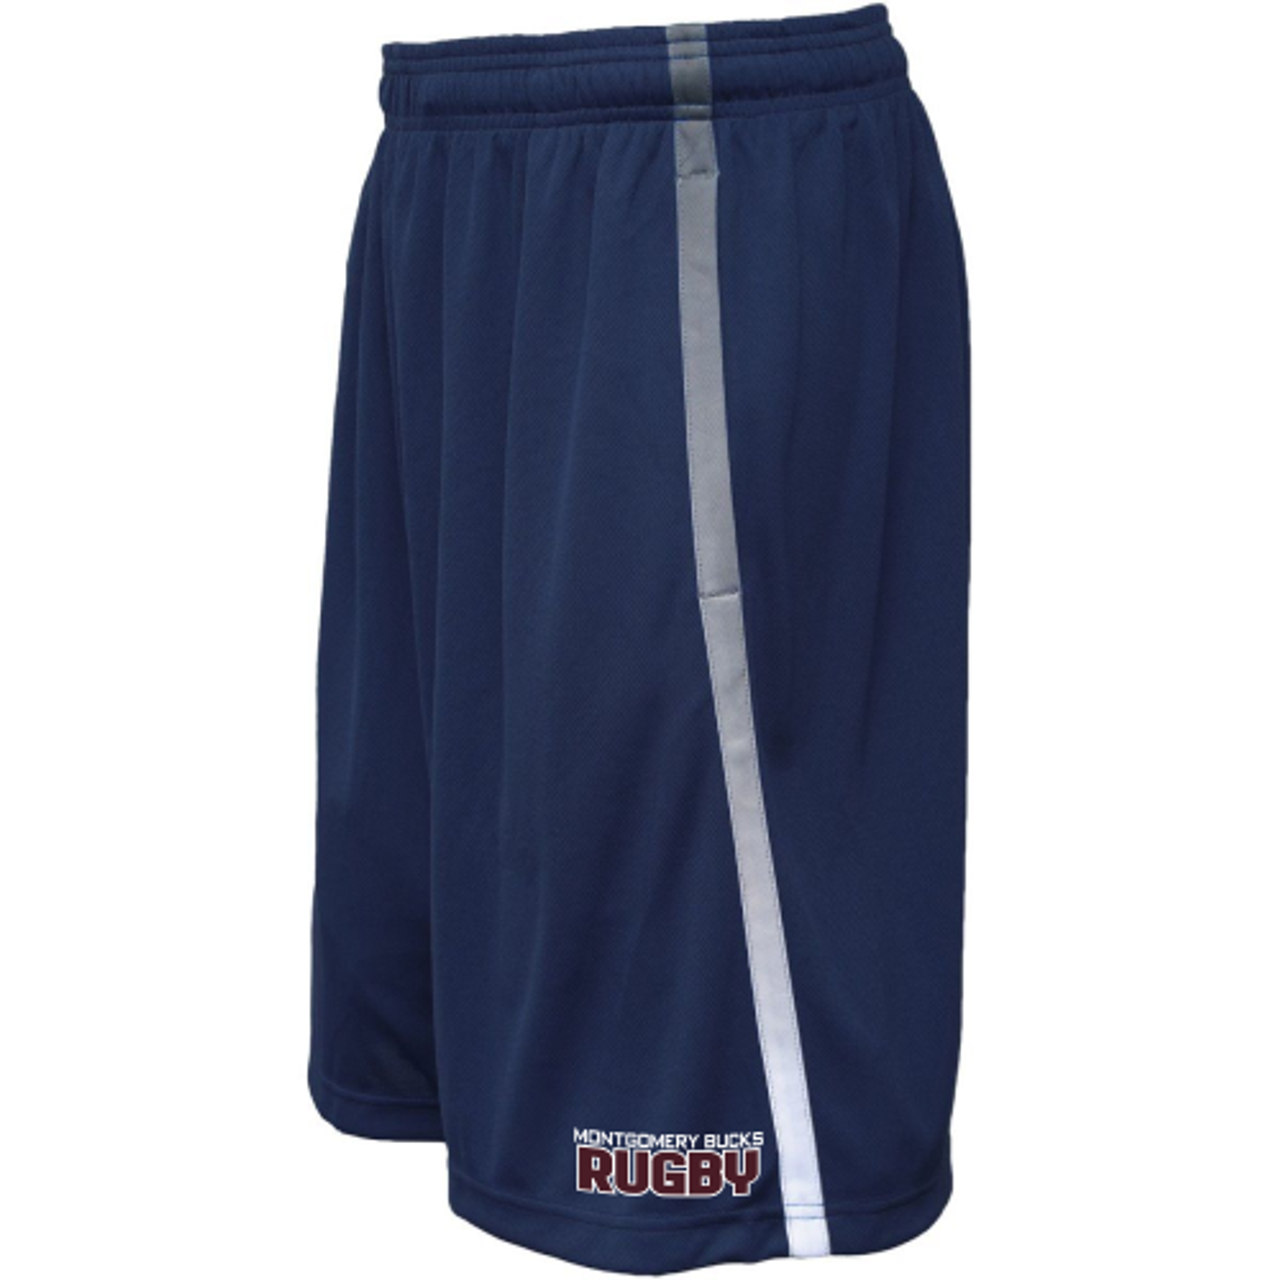 MB Rugby Gym Shorts, Navy